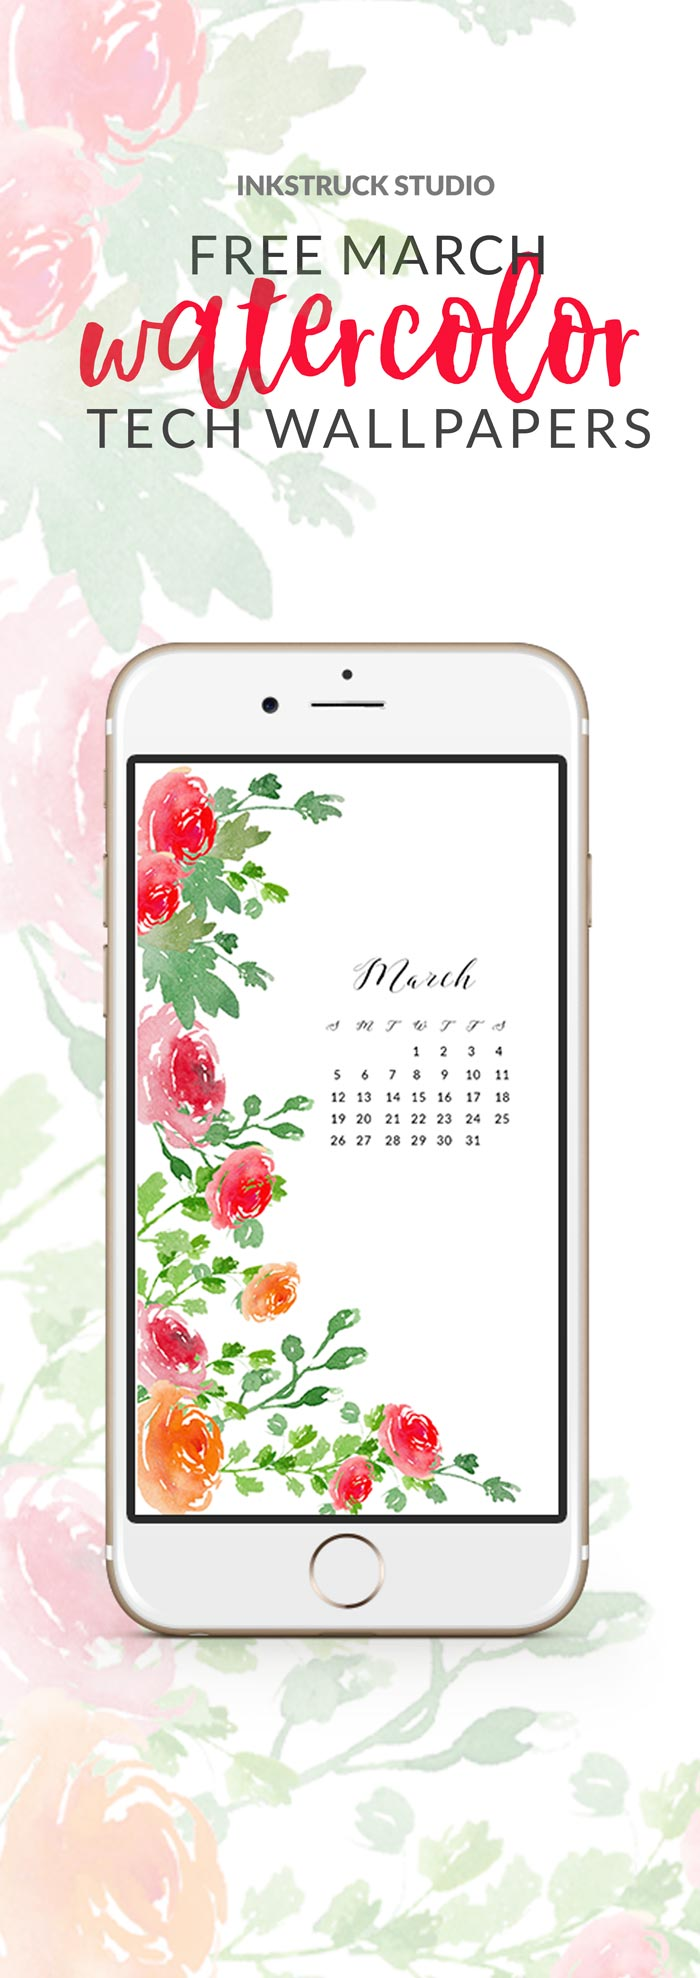 Time to change your tech wallpapers for March! And to make it pretty I have these March watercolor wallpapers for you on the blog. Click to download | www.inkstruck.com